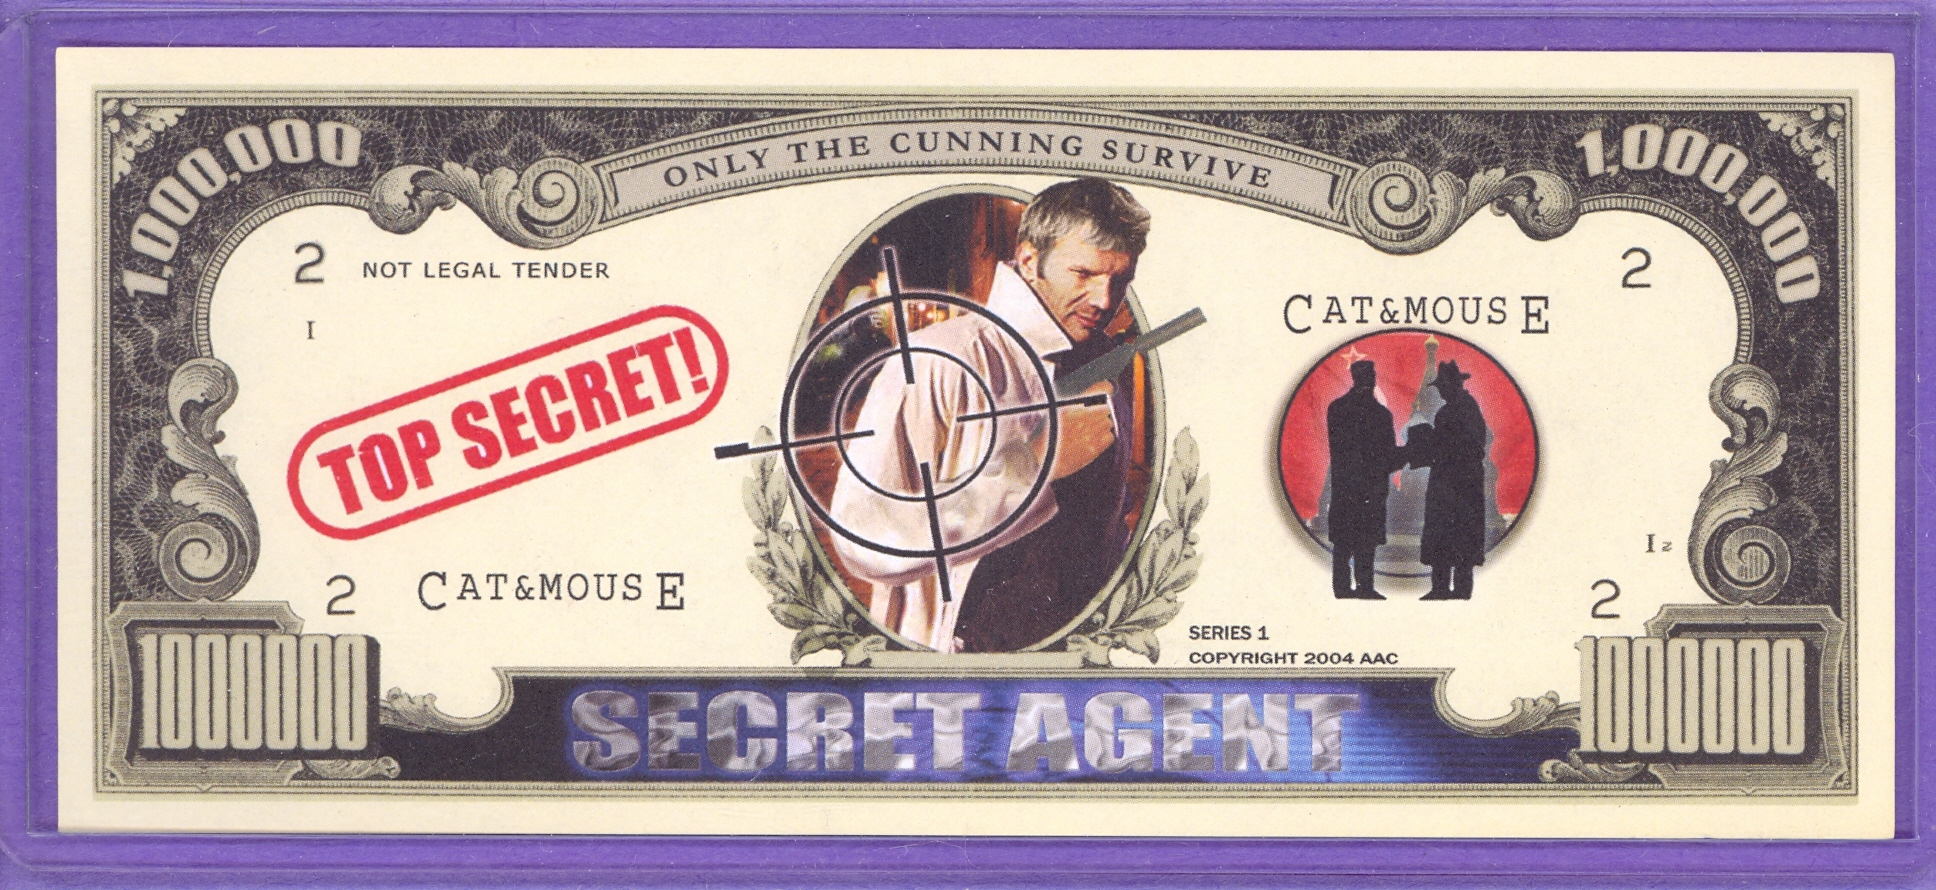 Secret Agent $1,000,000 Novelty or Fantasy Note